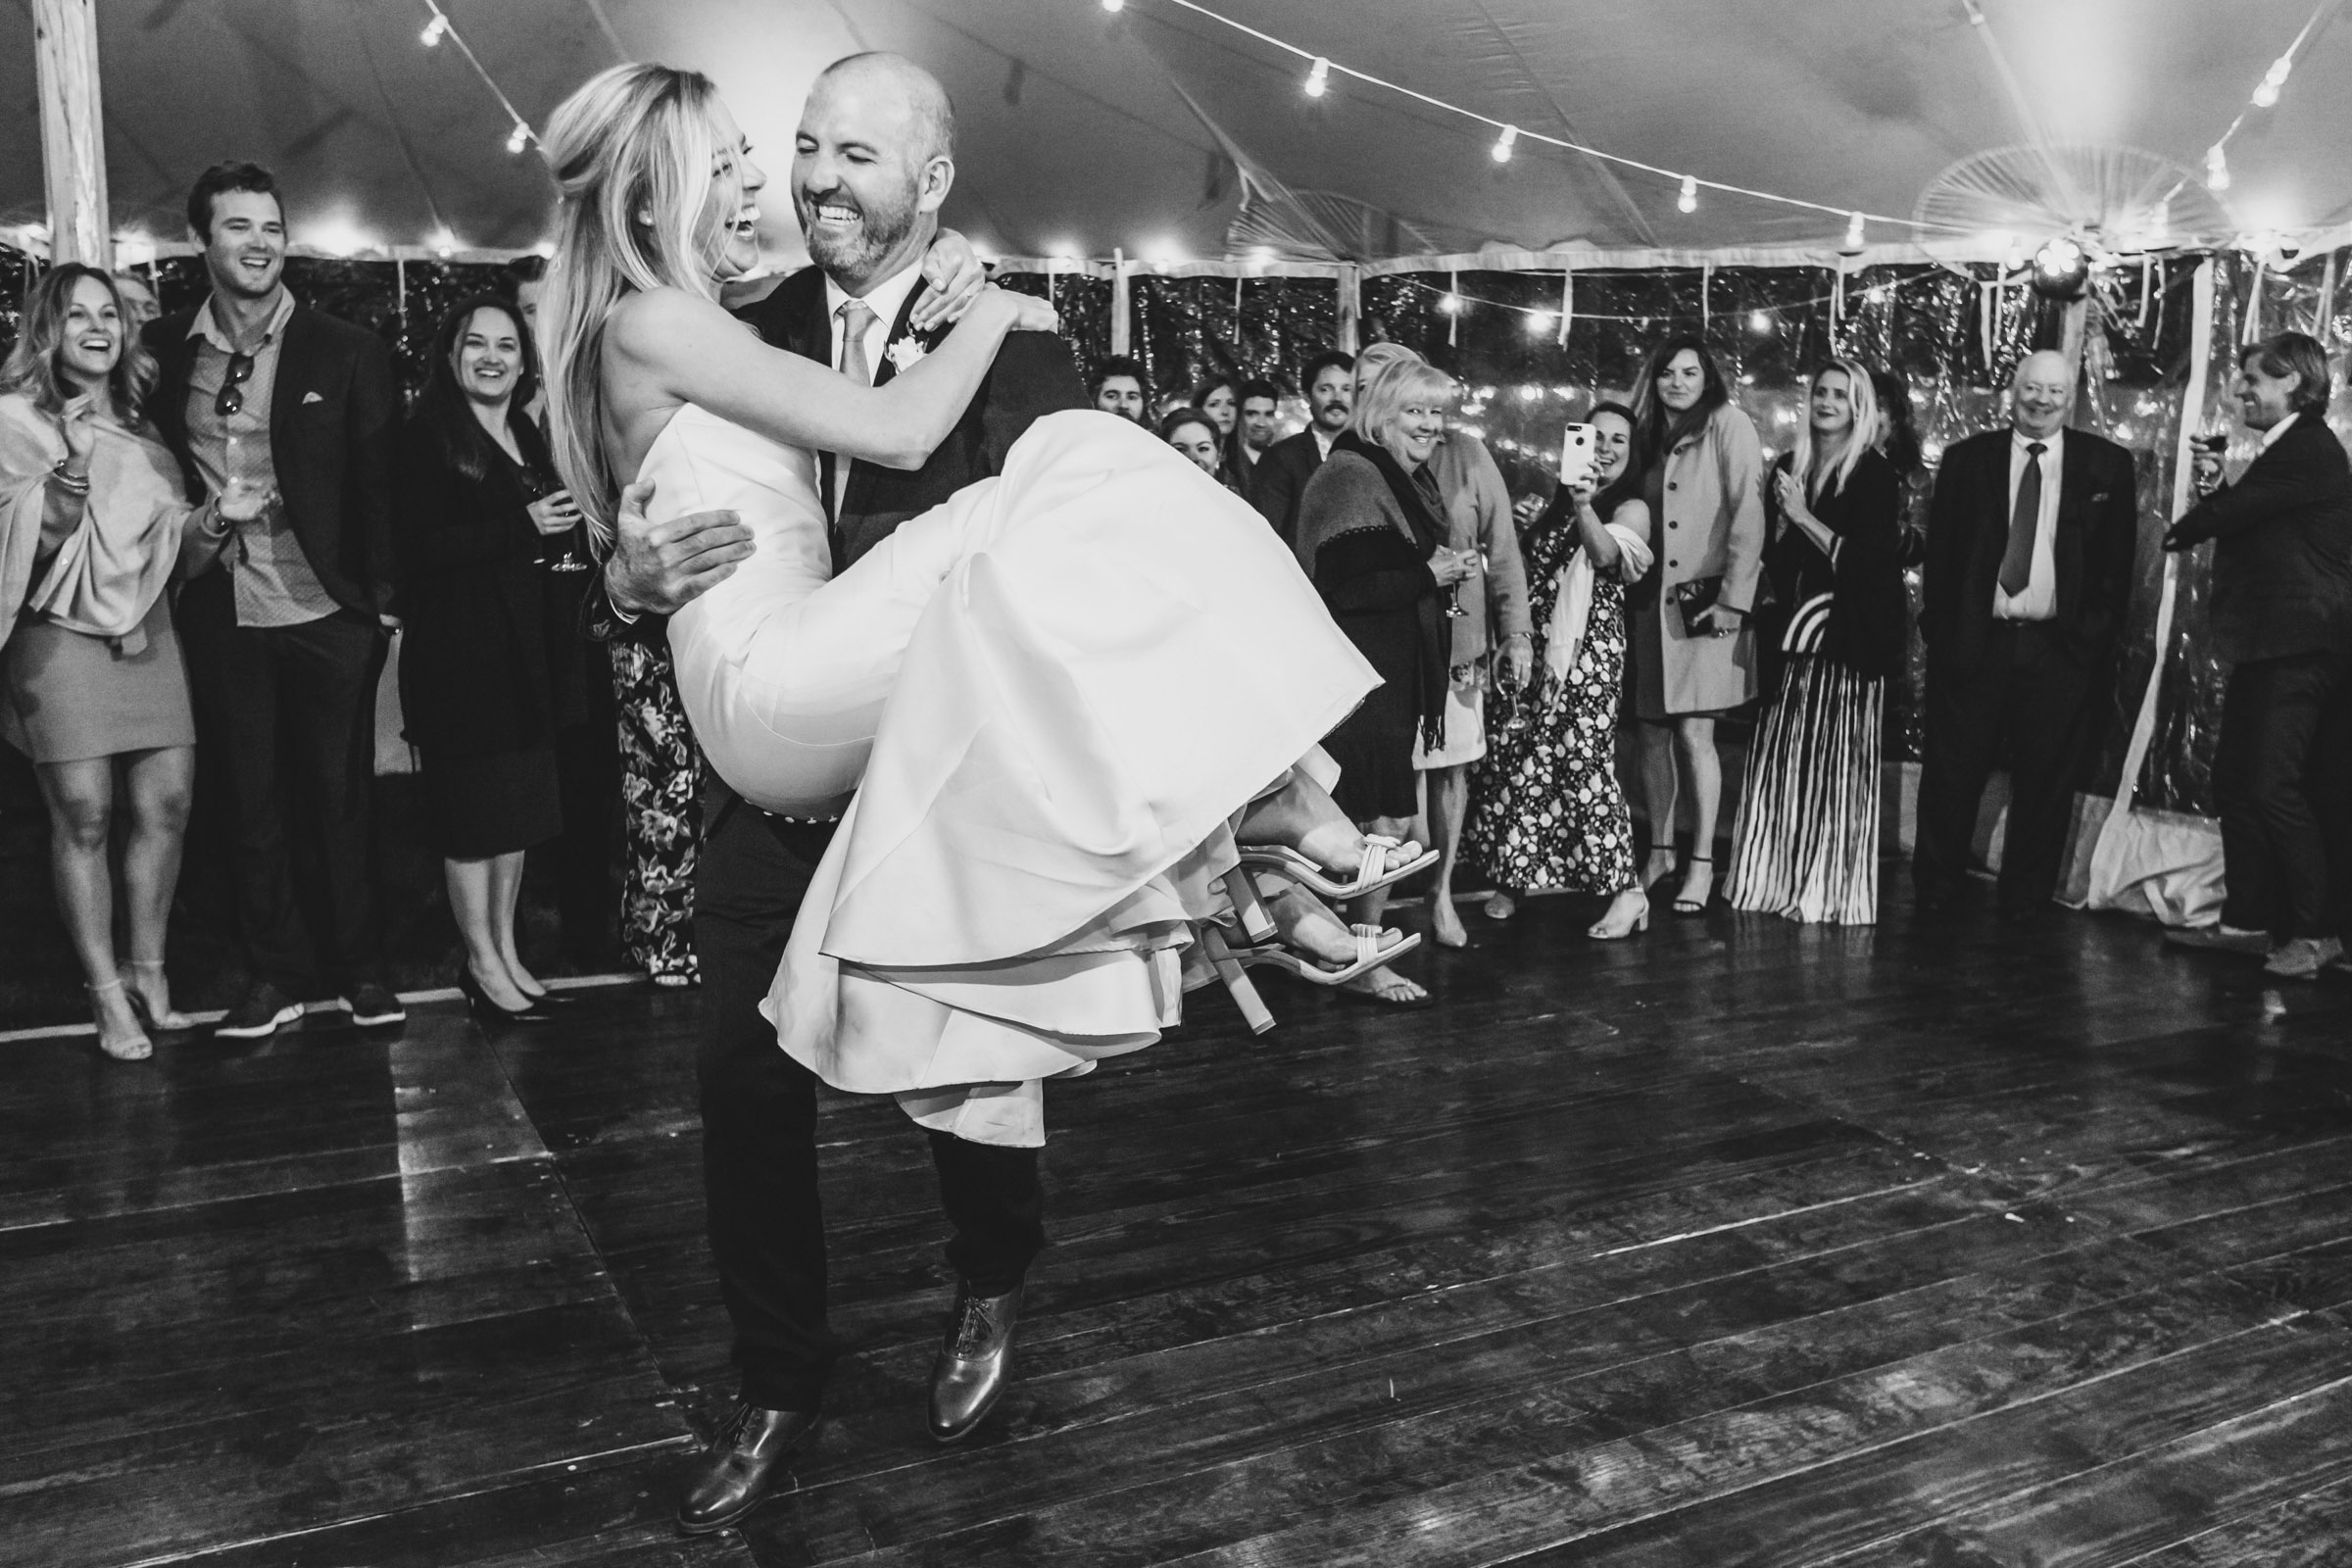 Groom lifts bride at dance party - photo by Katie Kaizer Photography